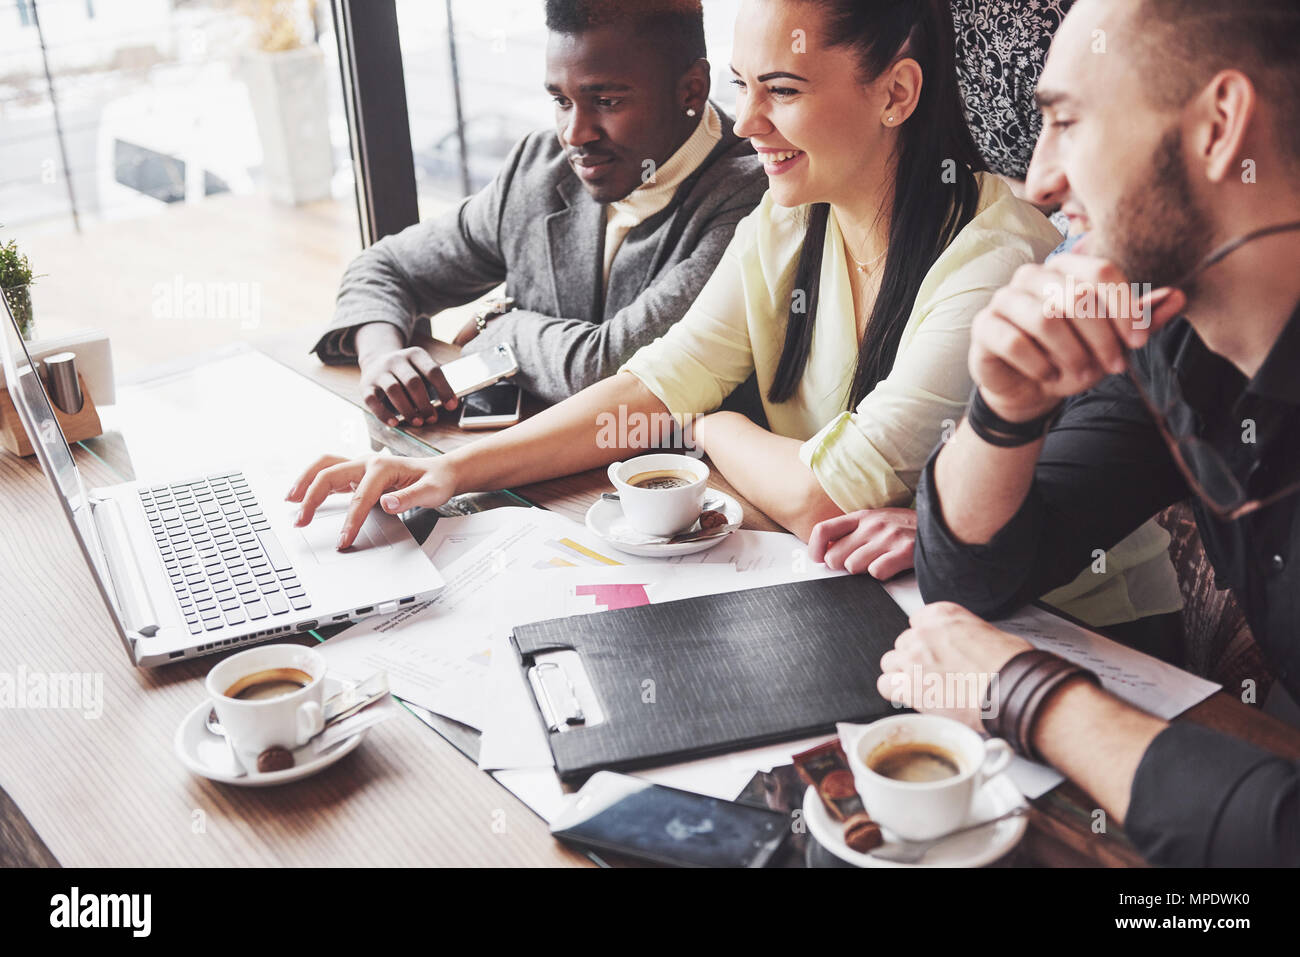 Multi ethnic business people, entrepreneur, business, small business concept, Woman showing coworkers something on laptop computer as they gather around a conference table - Stock Image